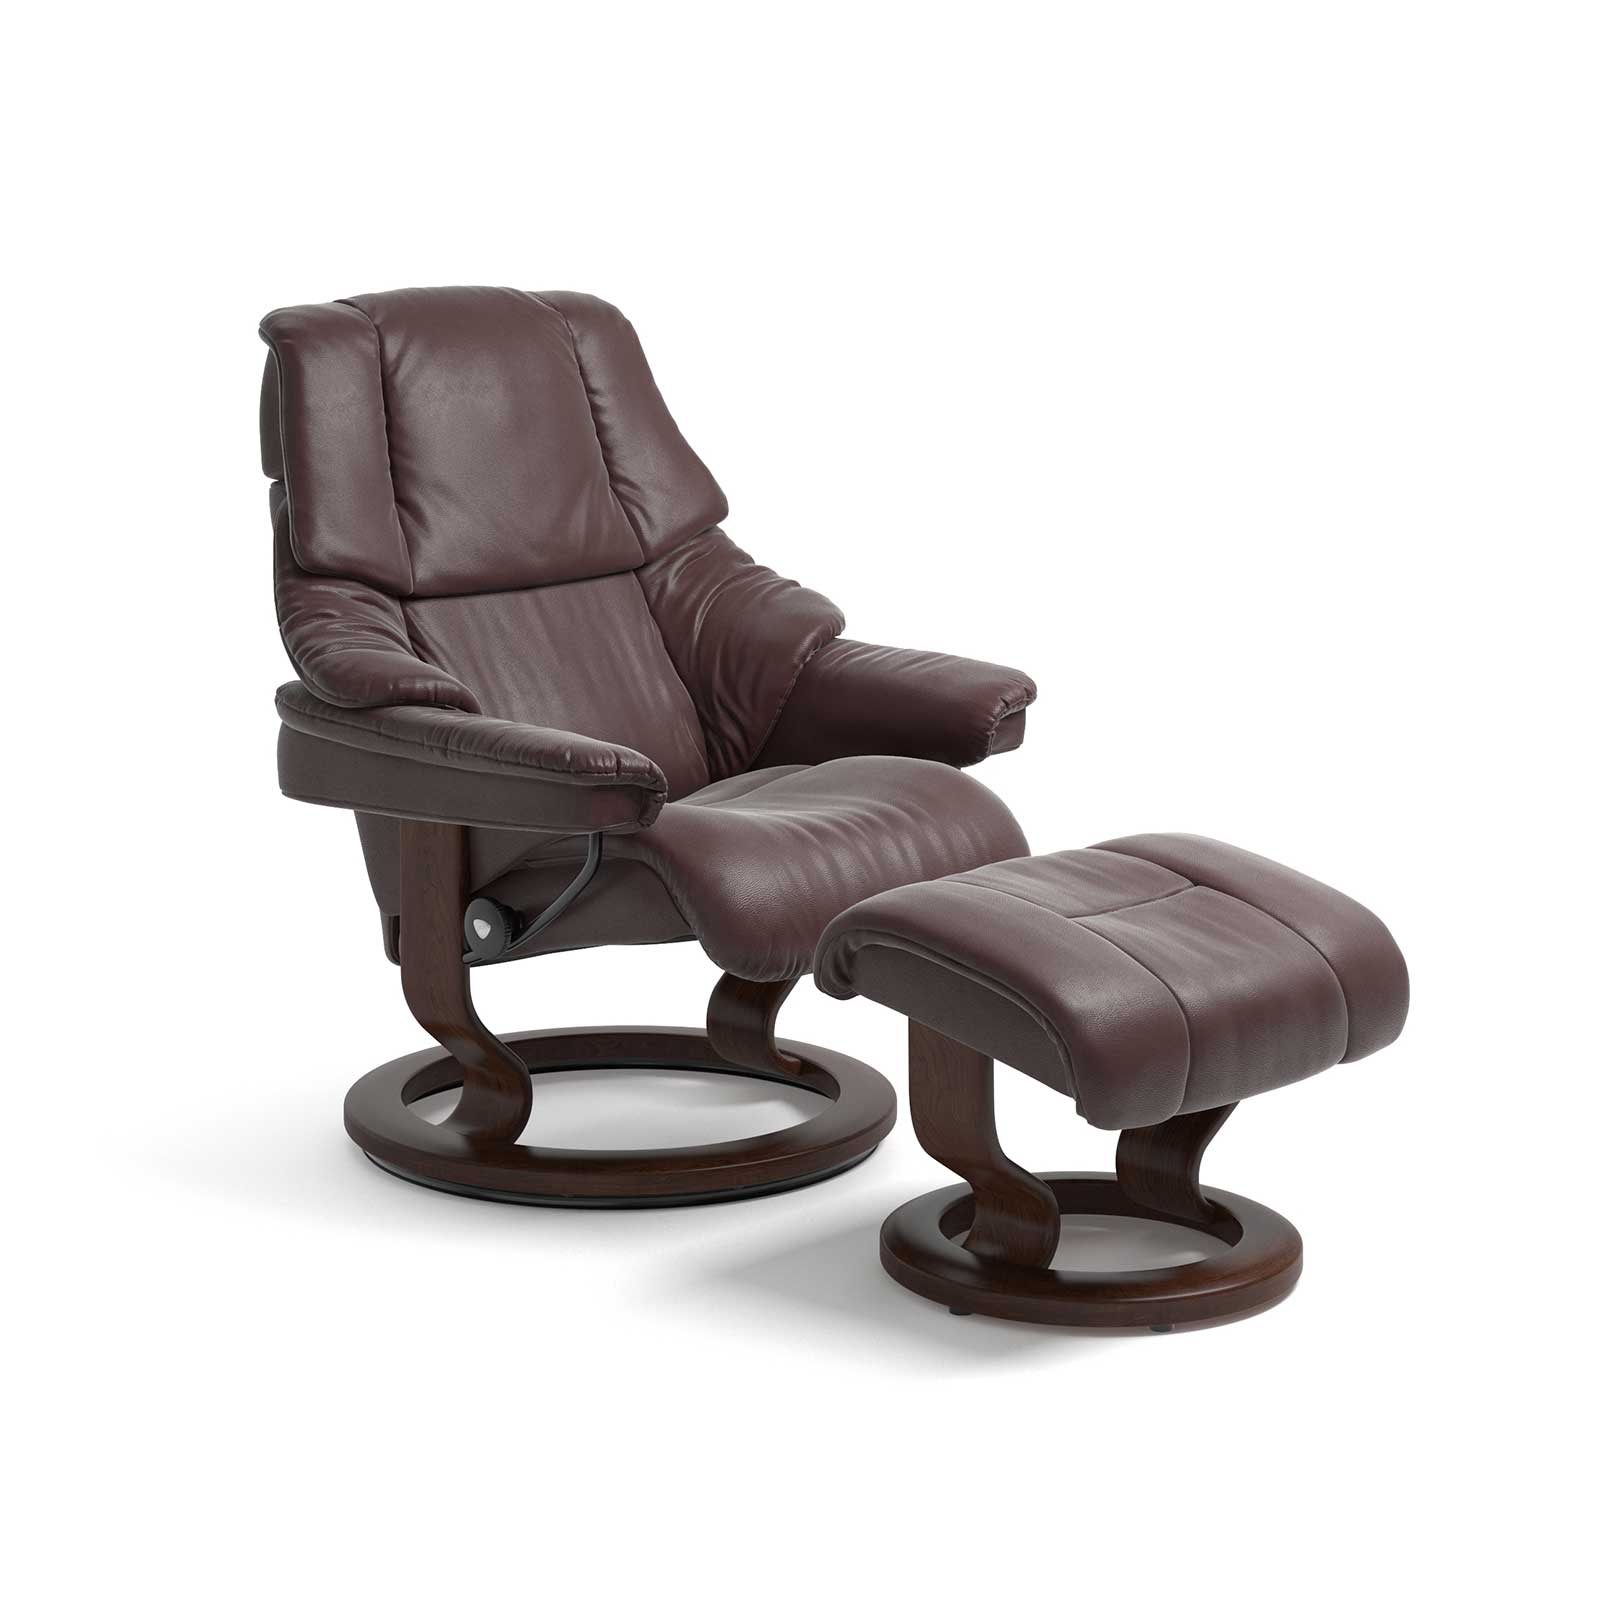 Stressless Sessel Reno Cori Amarone Mit Hocker Stressless